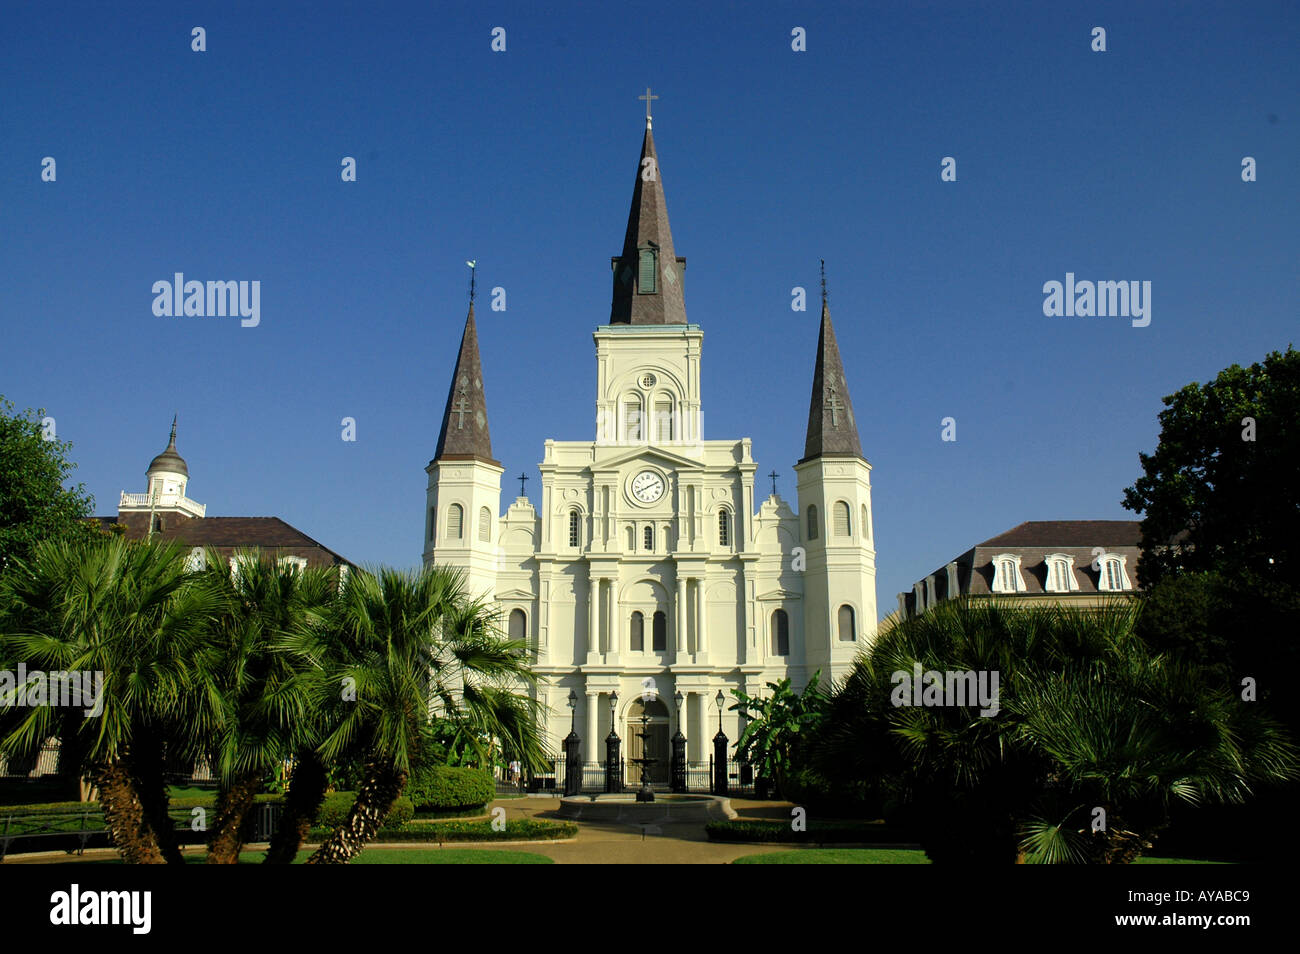 New Orleans LA Louisiana St Louis Cathedral - Stock Image